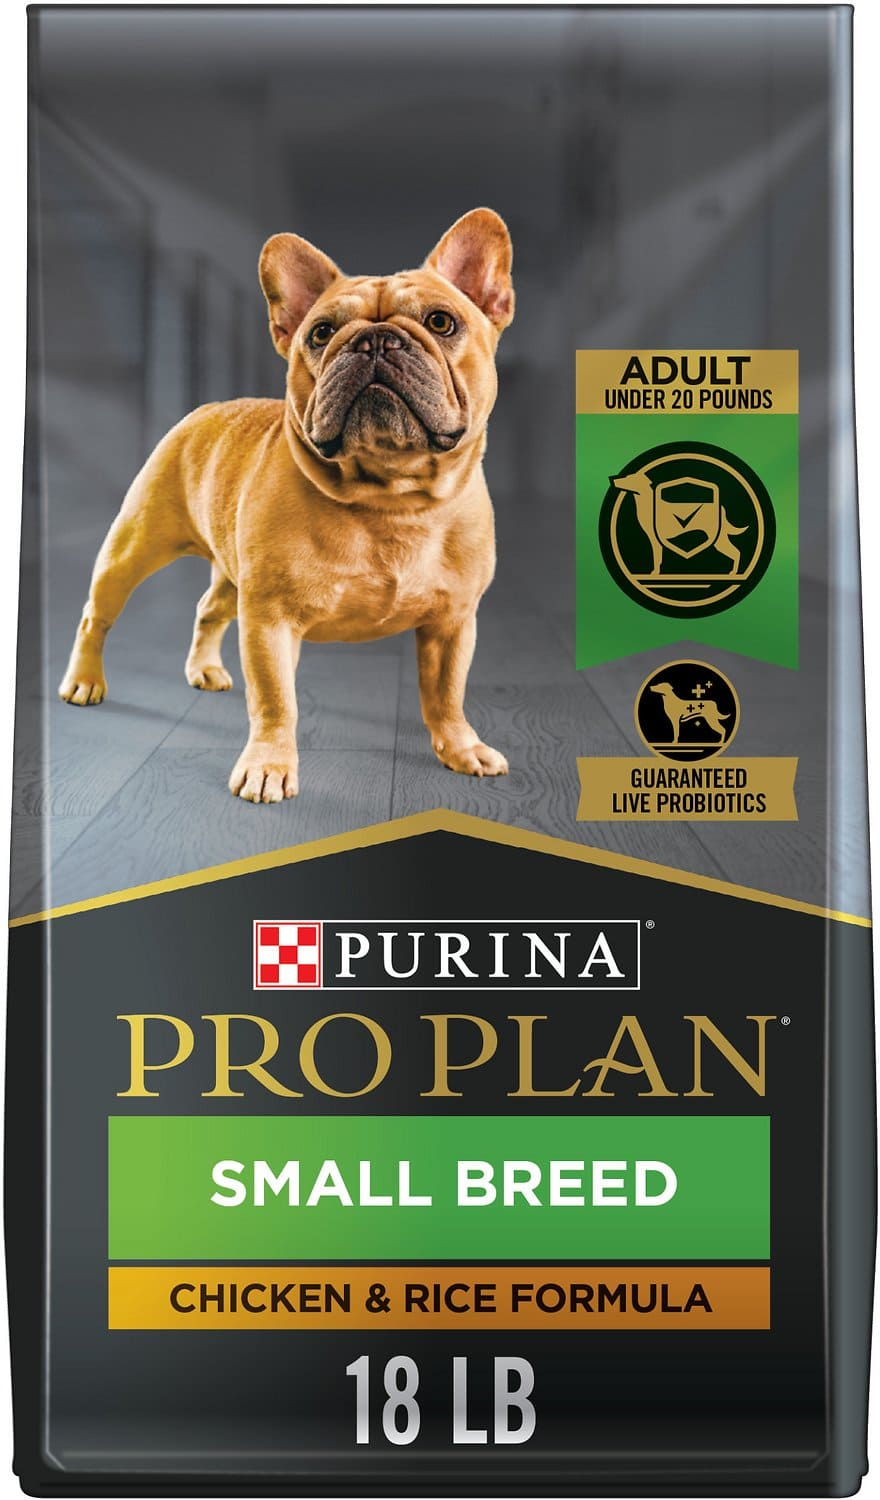 Purina Pro Plan Adult Small Breed 18 lbs Chicken & Rice 1